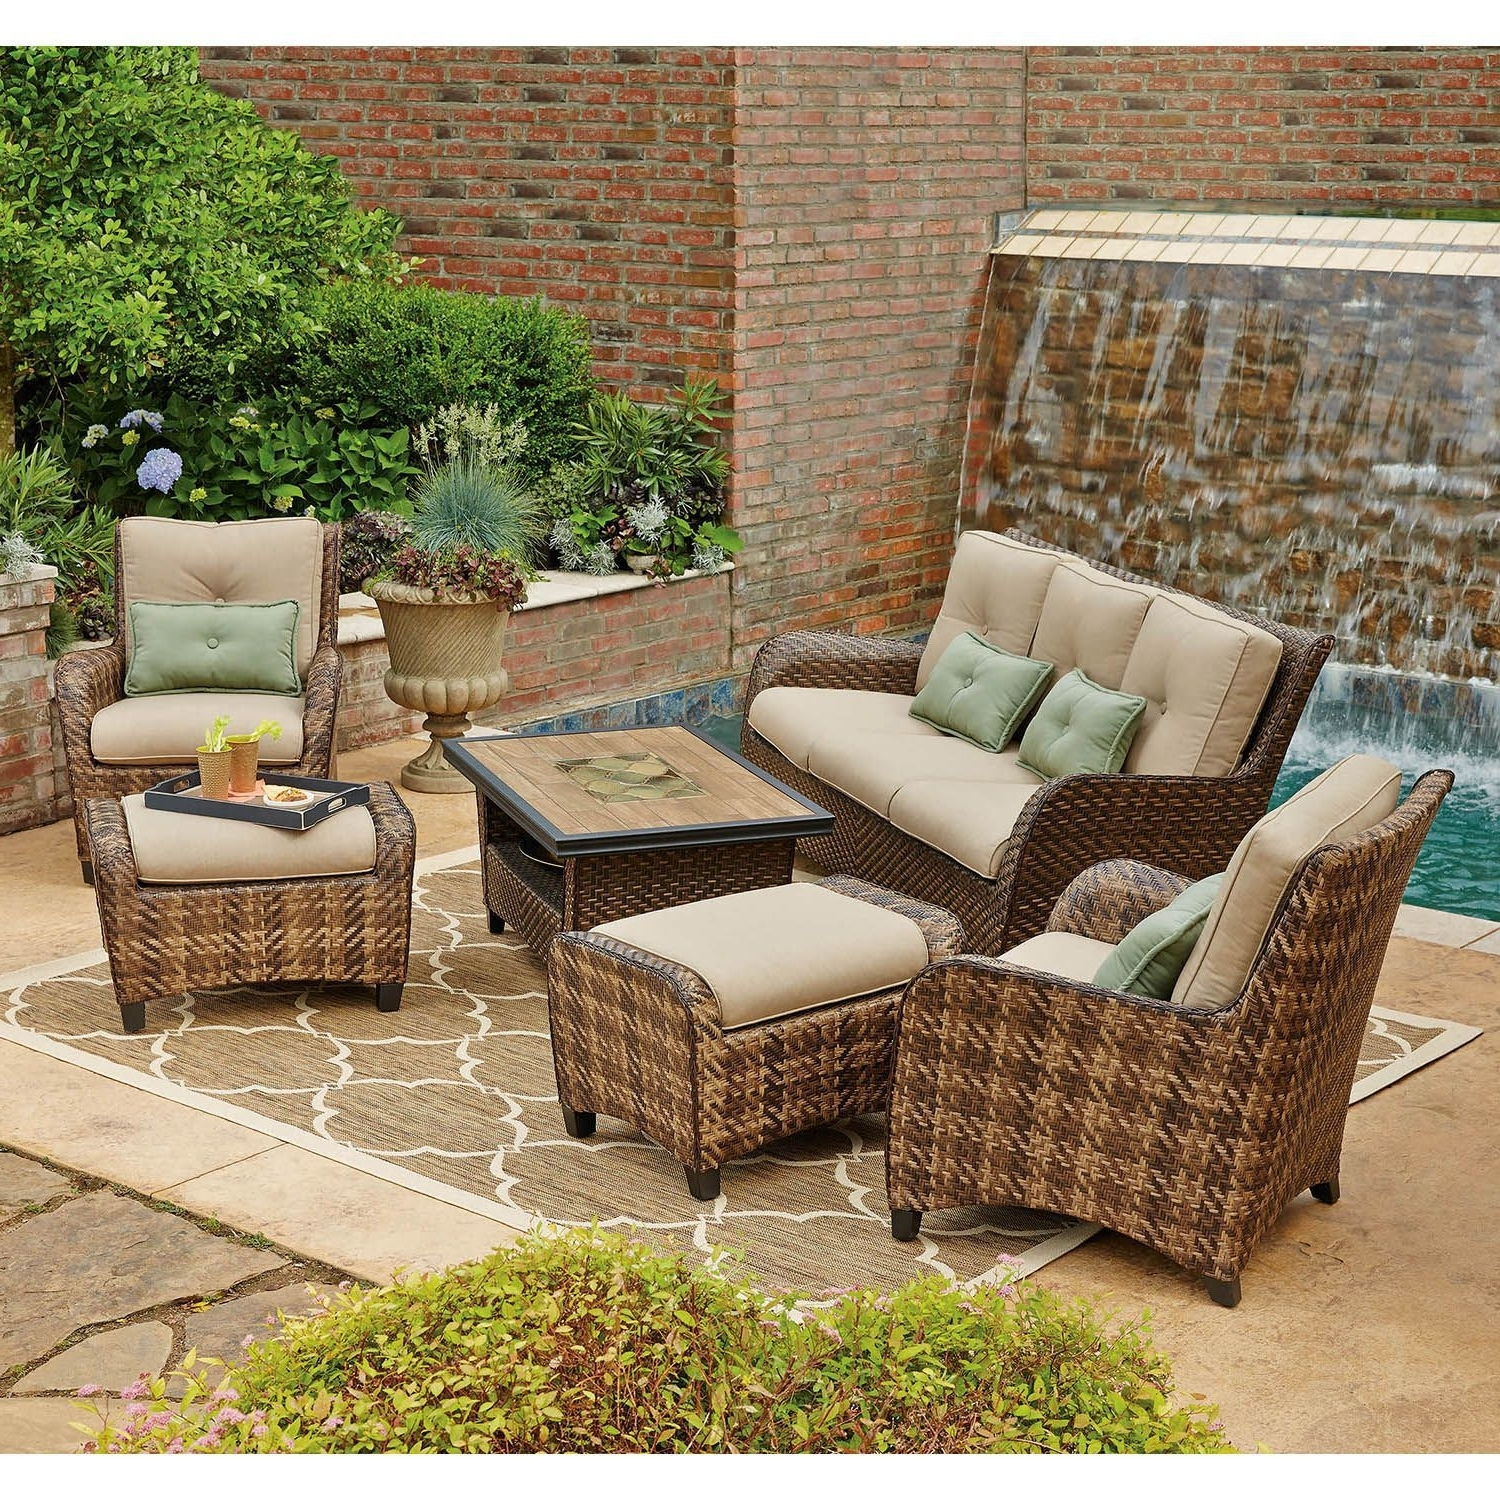 Patio Design Central (View 13 of 15)